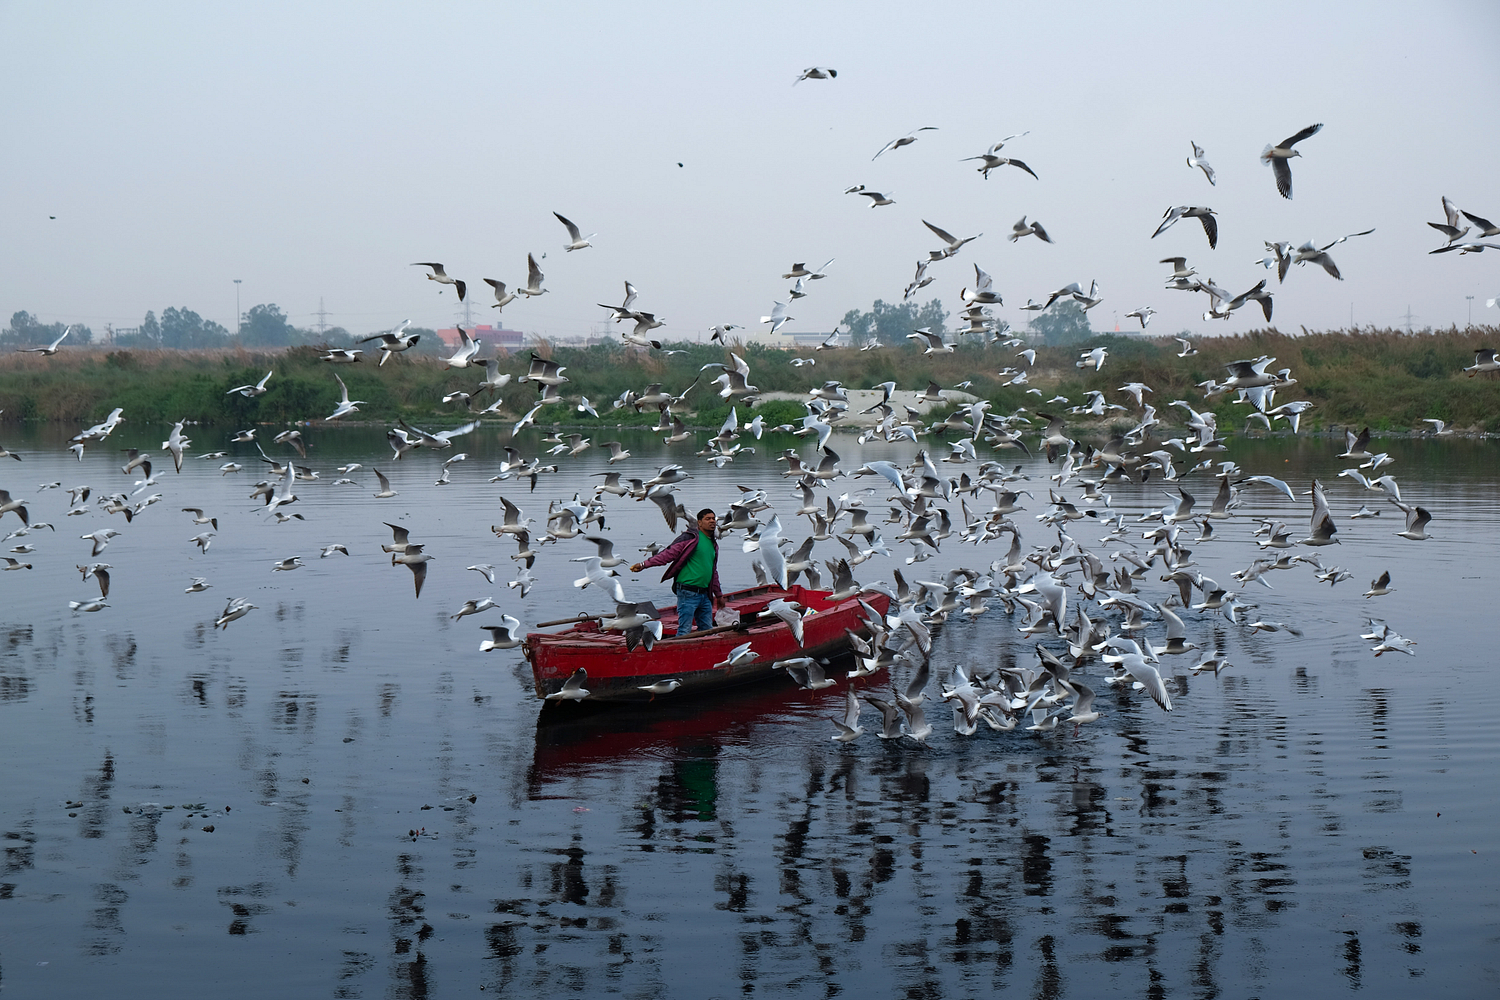 News Assignment/Pollution in Delhi: A boatman feeds seagulls on Yamuna river on a chilly evening in New Delhi on 12th February. Concentrations of tiny, airborne PM2.5 particles topped levels this week in New Delhi and Beijing - today's poster-cities for the perils of smog.